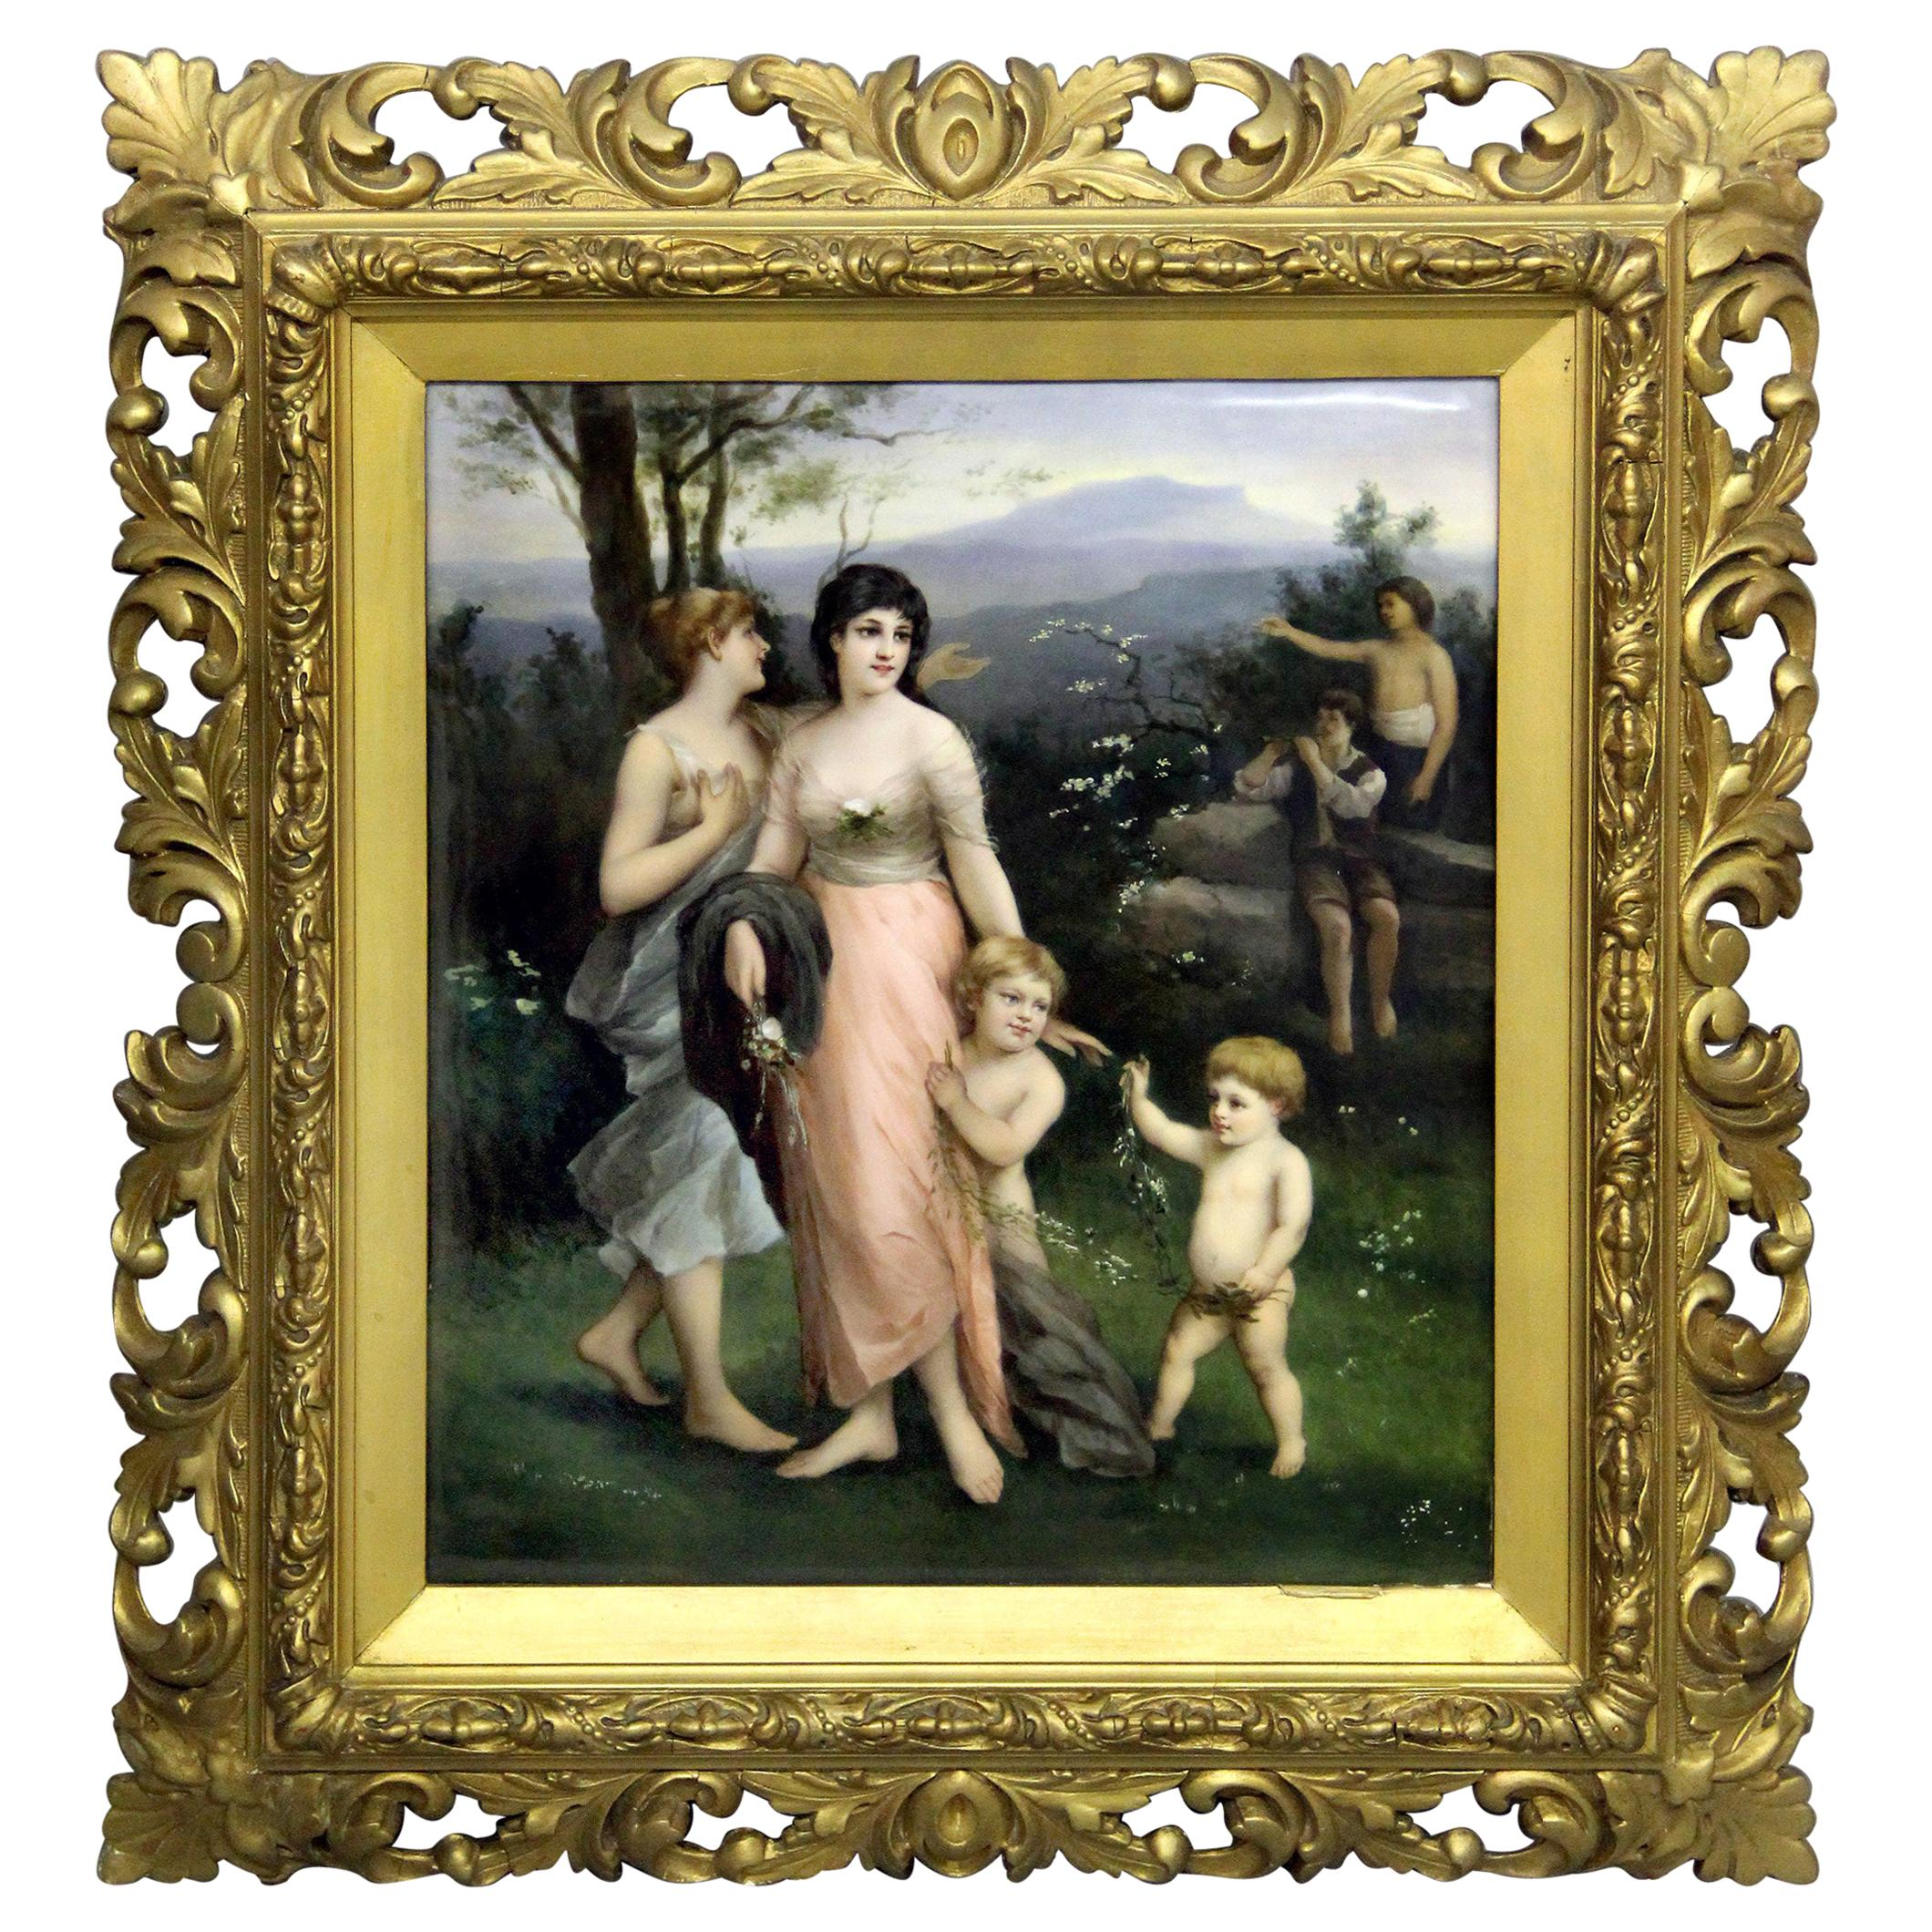 Wonderful Late 19th-Early 20th Berlin K.P.M. Porcelain Rectangular Plaque